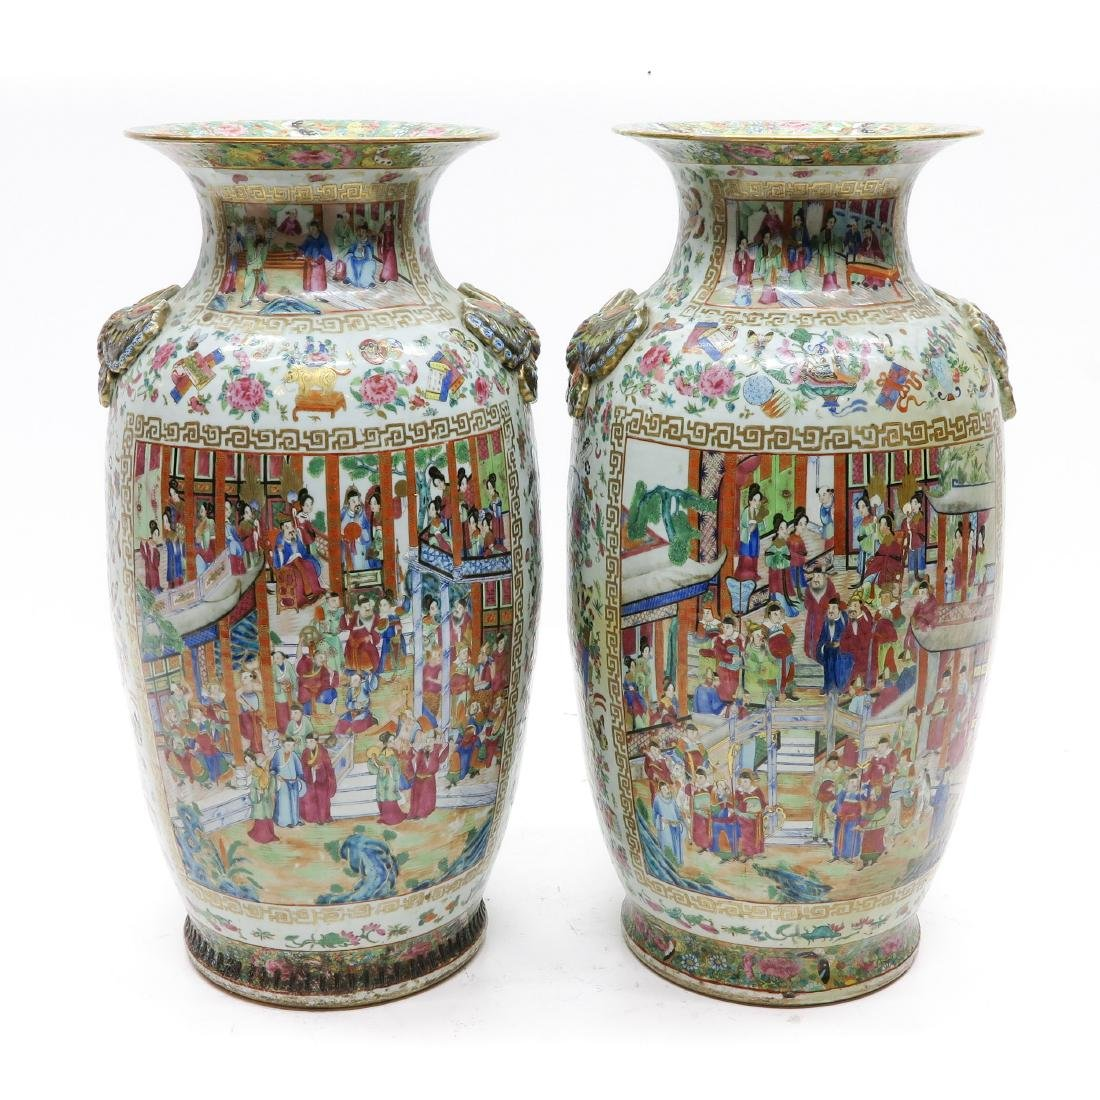 A Large Pair of Cantonese Vases